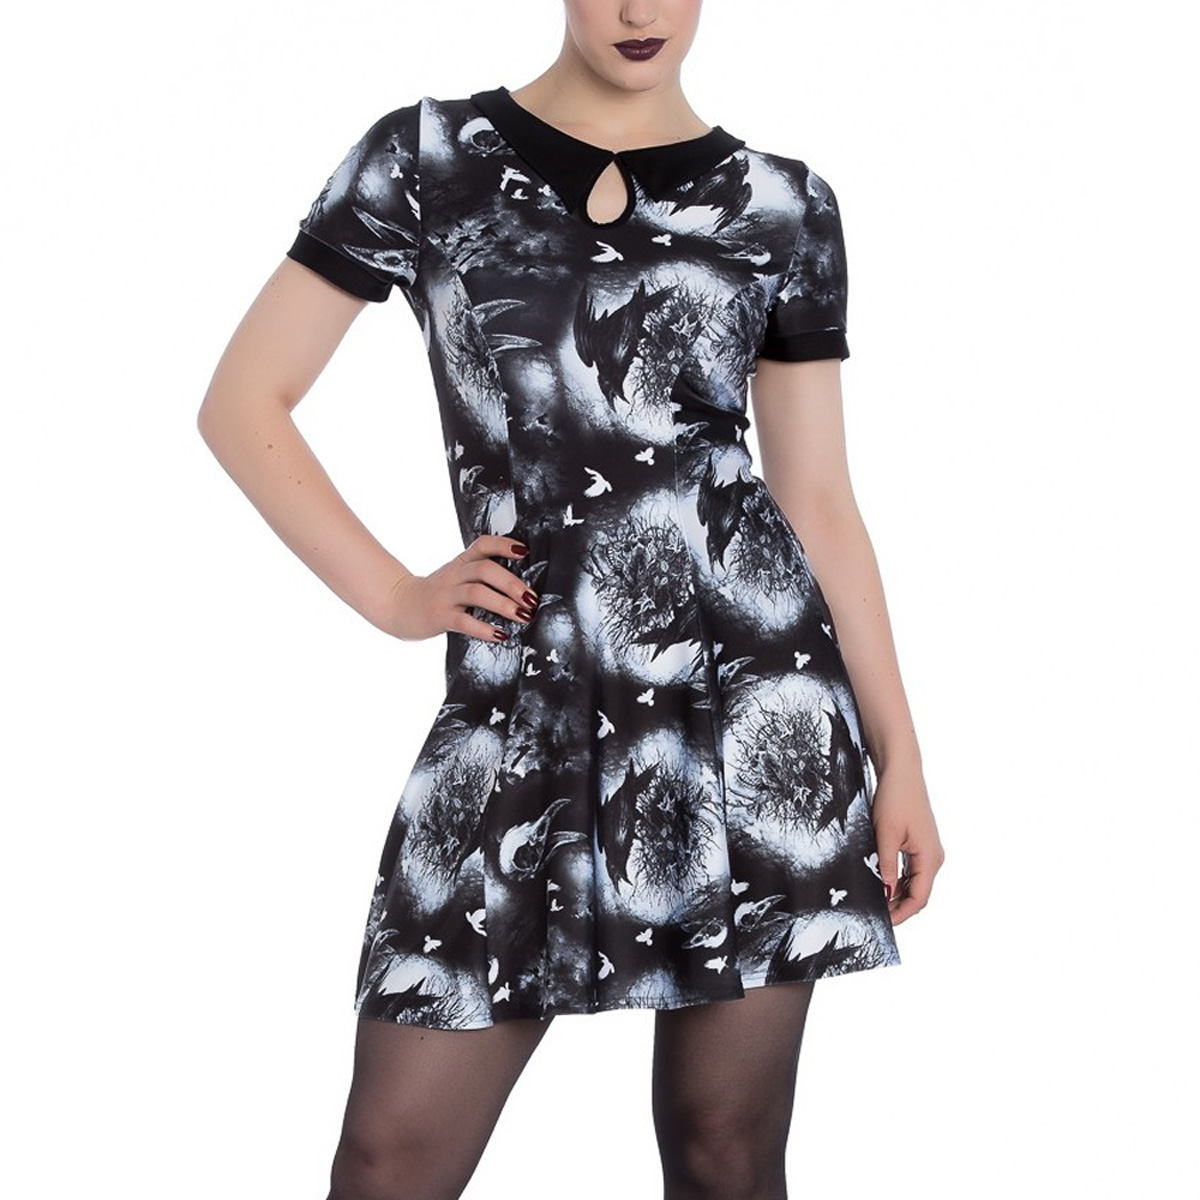 Hell-Bunny-Alternative-Goth-Punk-Black-Mini-Dress-CROWS-NEST-Witch-All-Sizes thumbnail 13